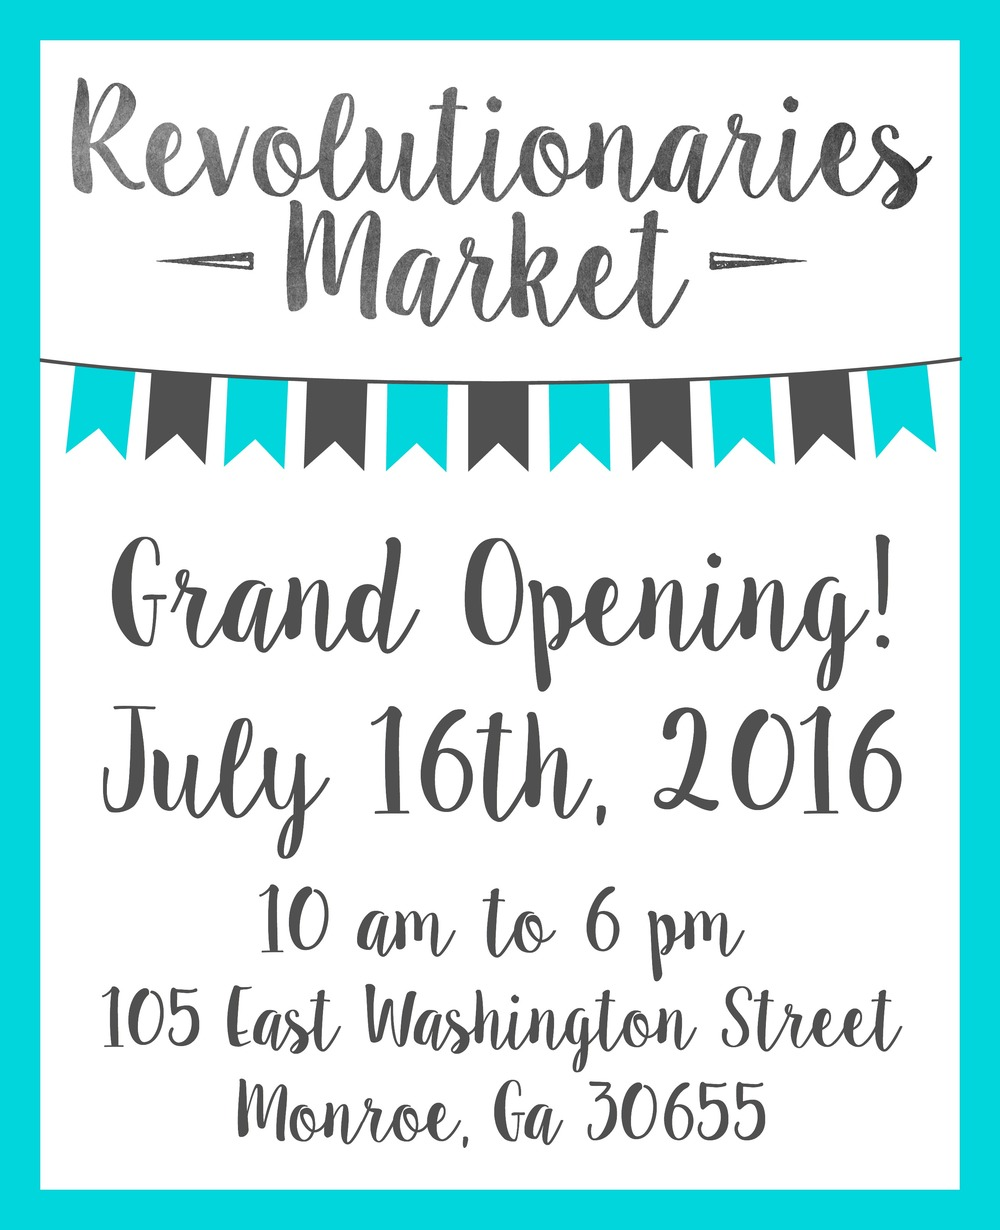 Revolutionaries Market Renovation: Update #3 and Our Grand Opening!